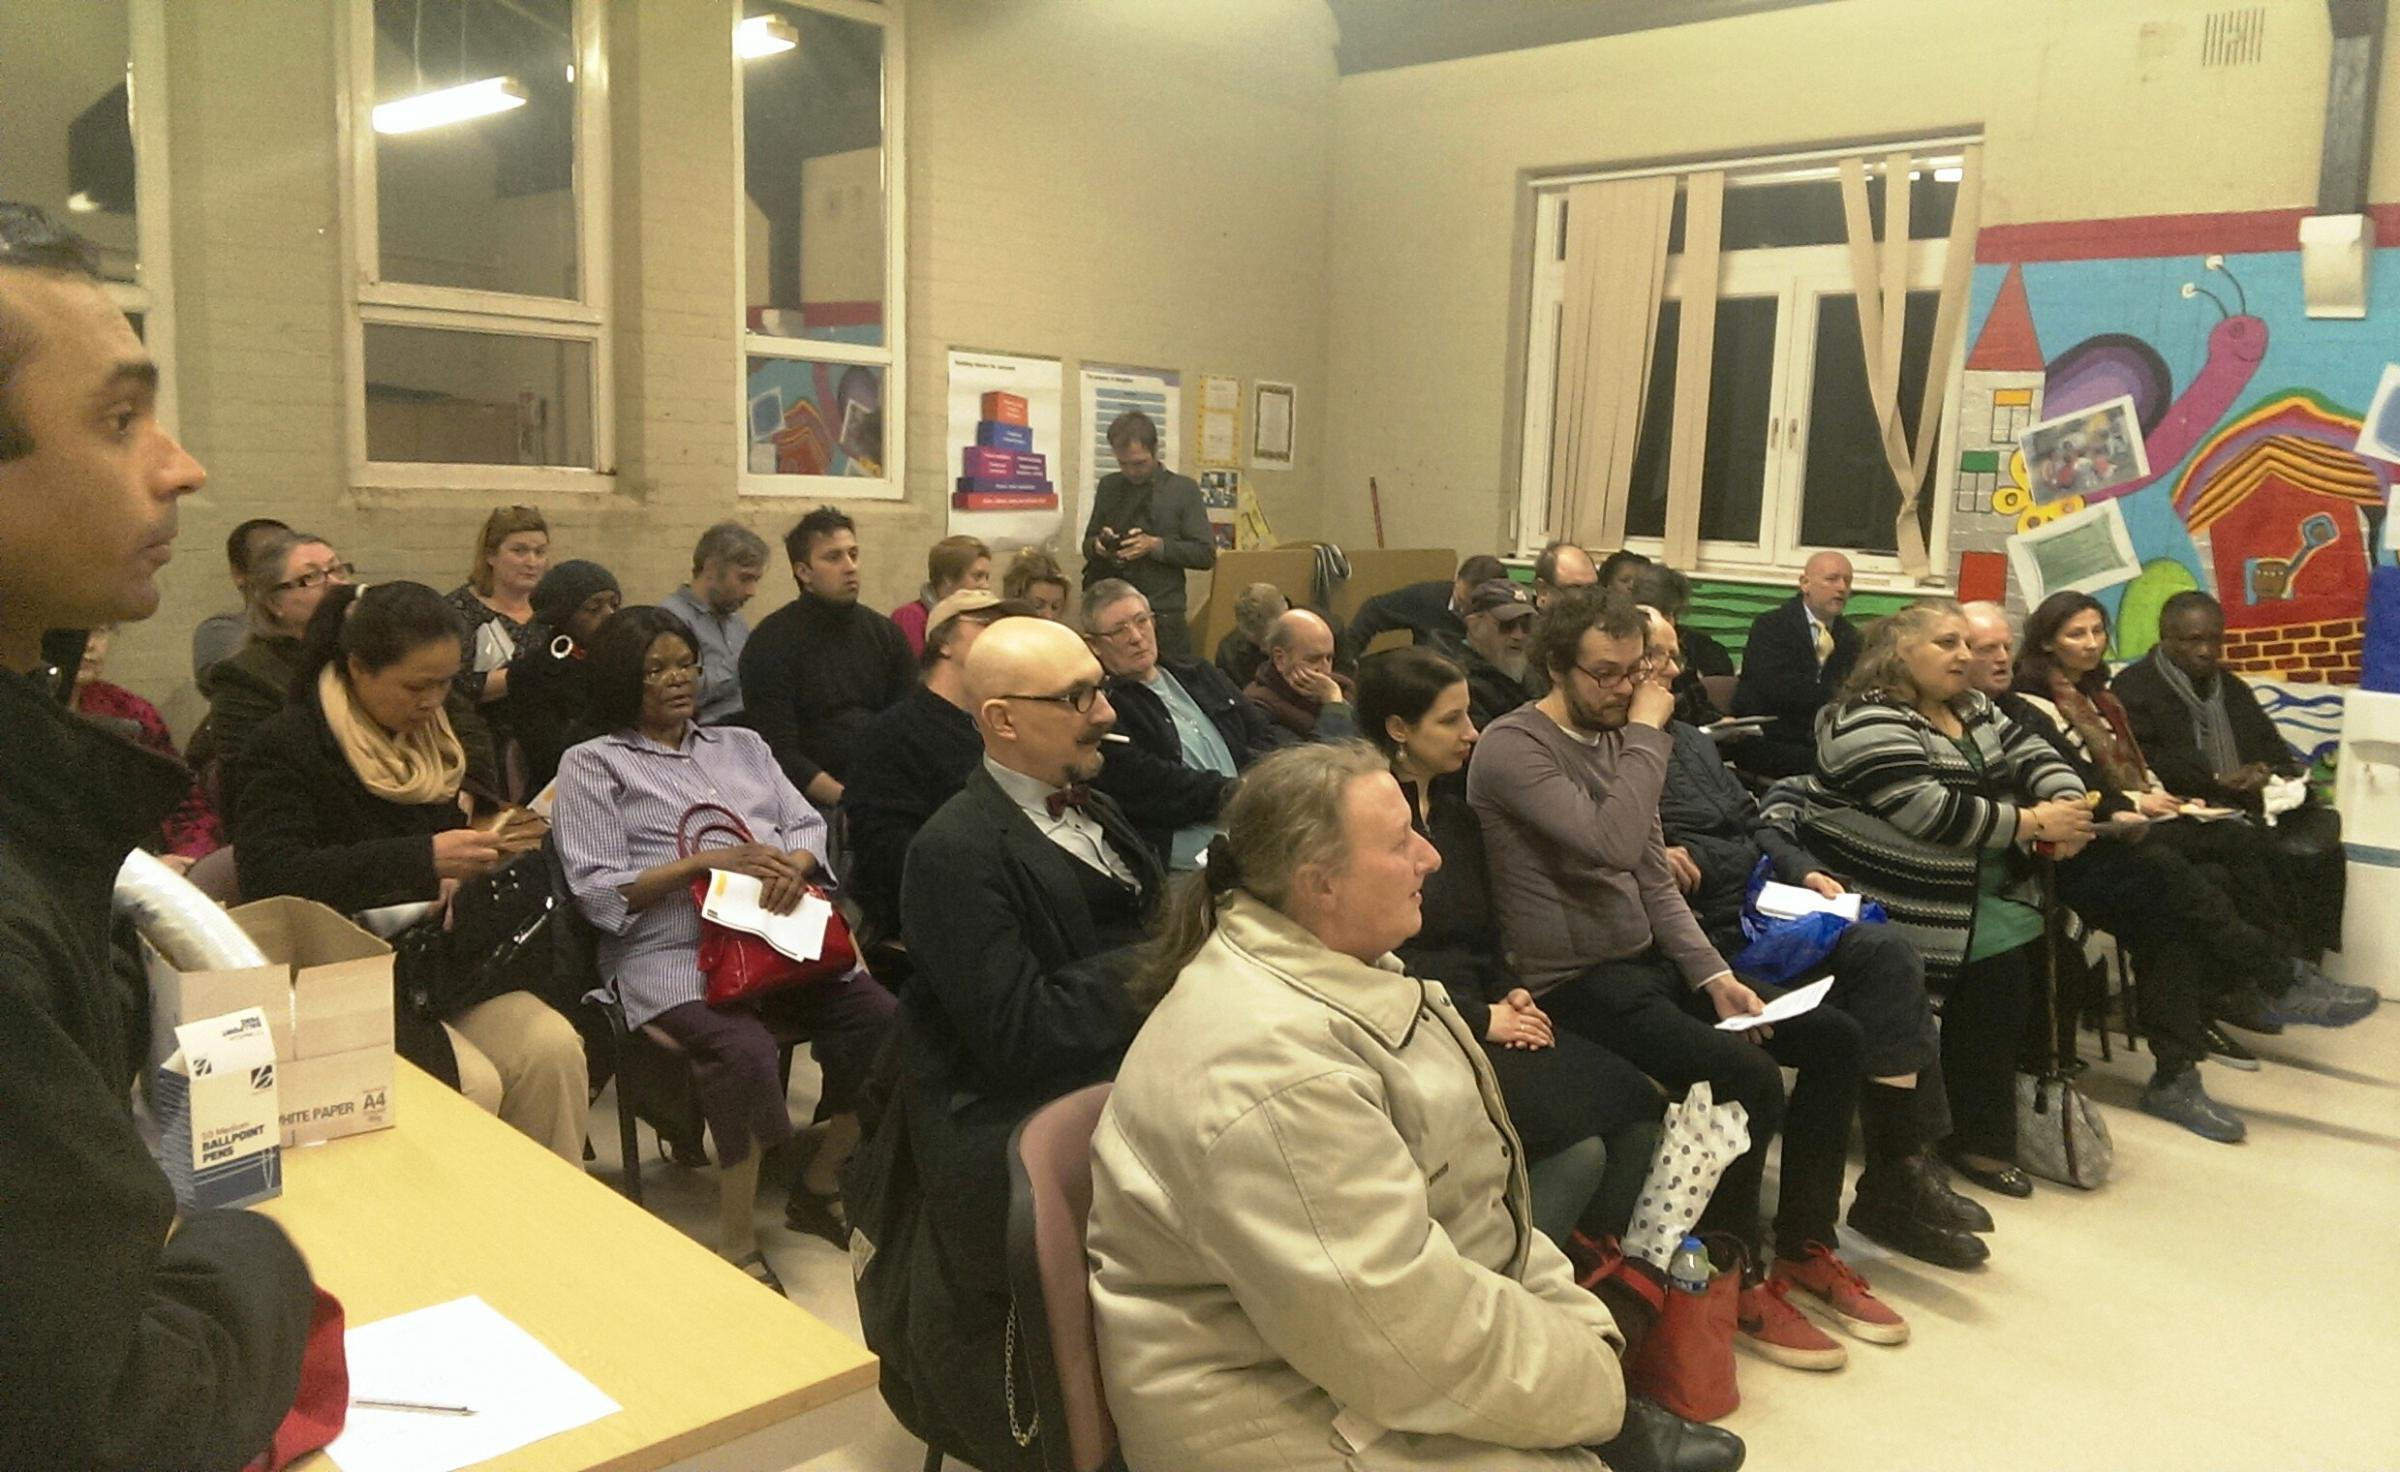 More than 50 people attended a meeting to call for urgent repairs to homes in the Noel Park estate.